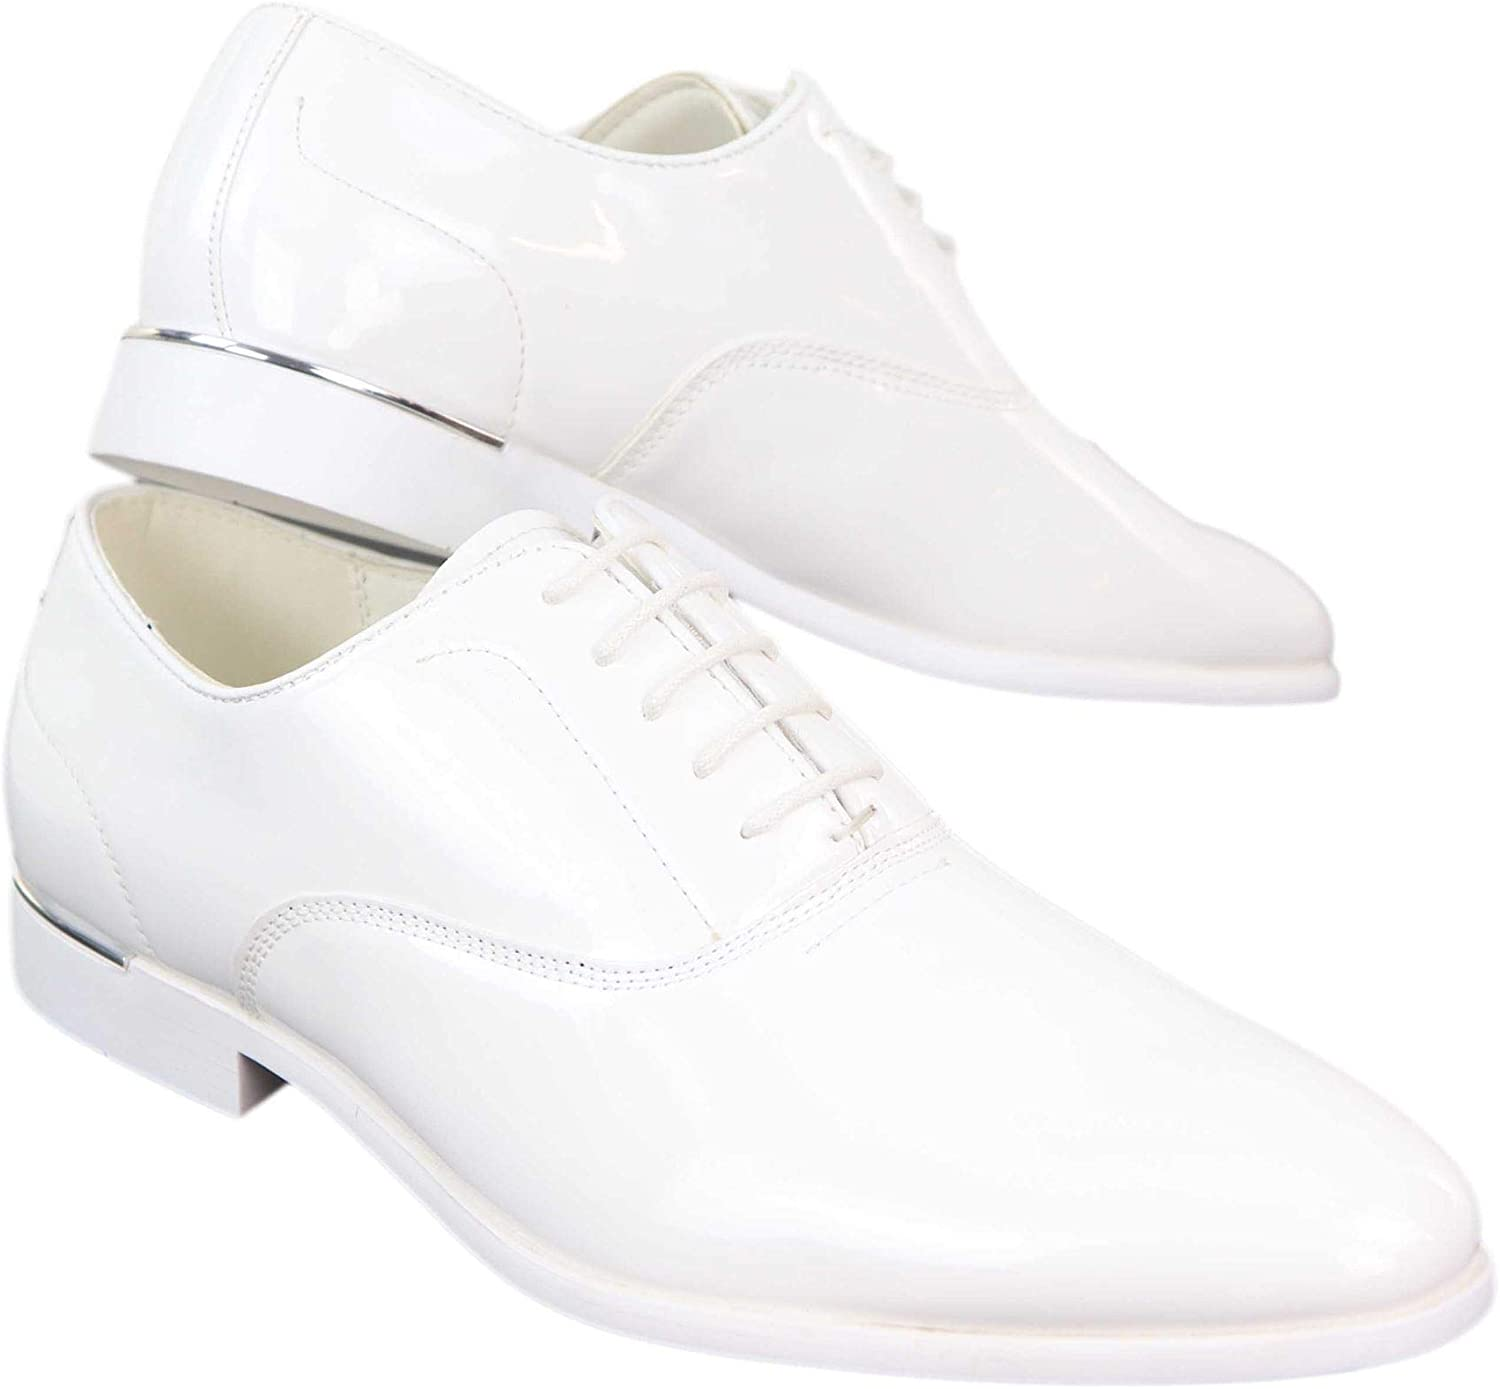 Details about  /Men/'s Shoes Classic Leather Elegant For Ceremony Made IN Italy with Laces